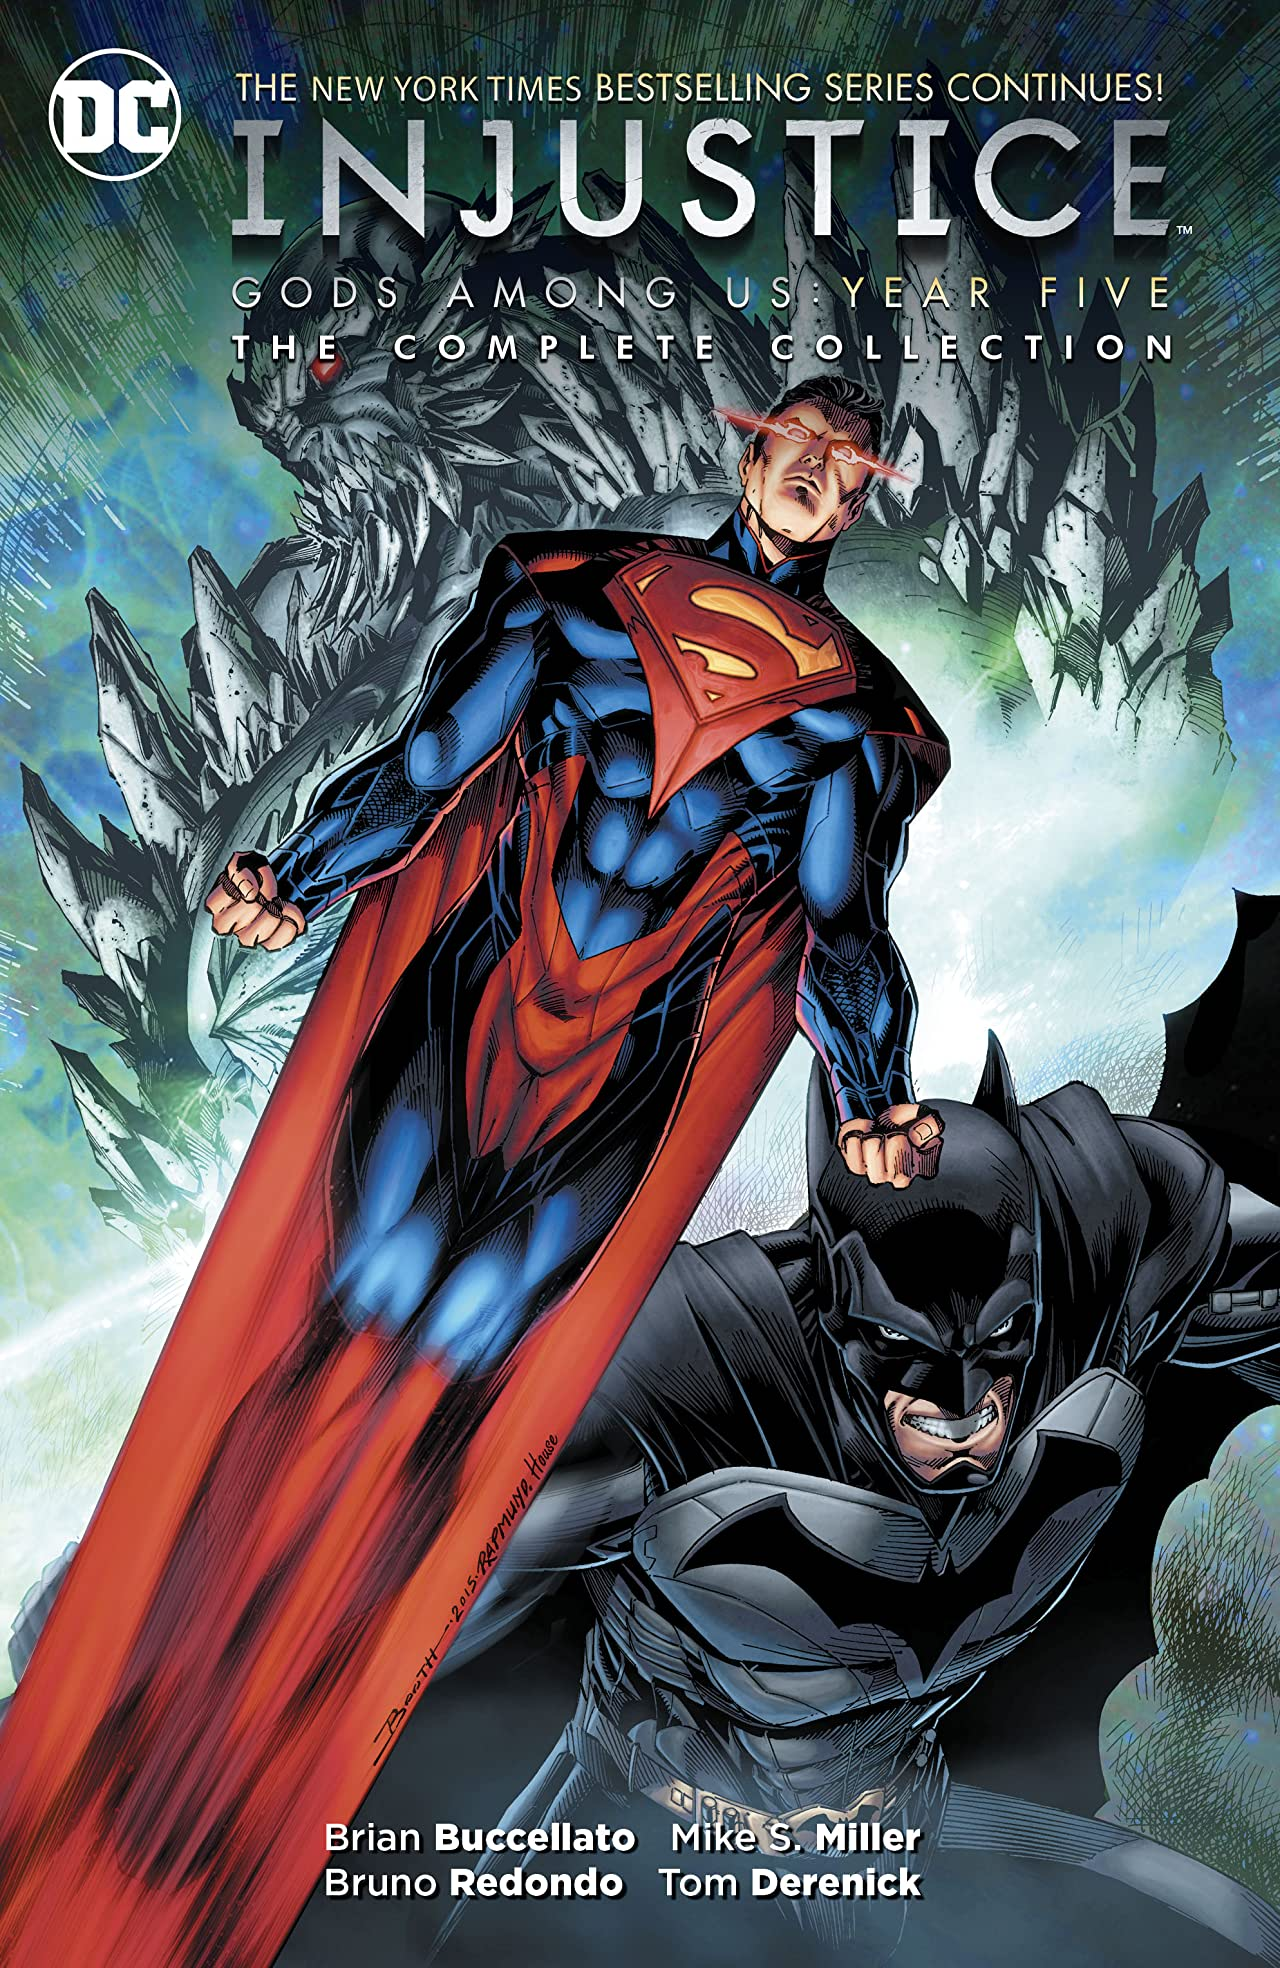 Injustice: Gods Among Us: Year Five - The Complete Collection